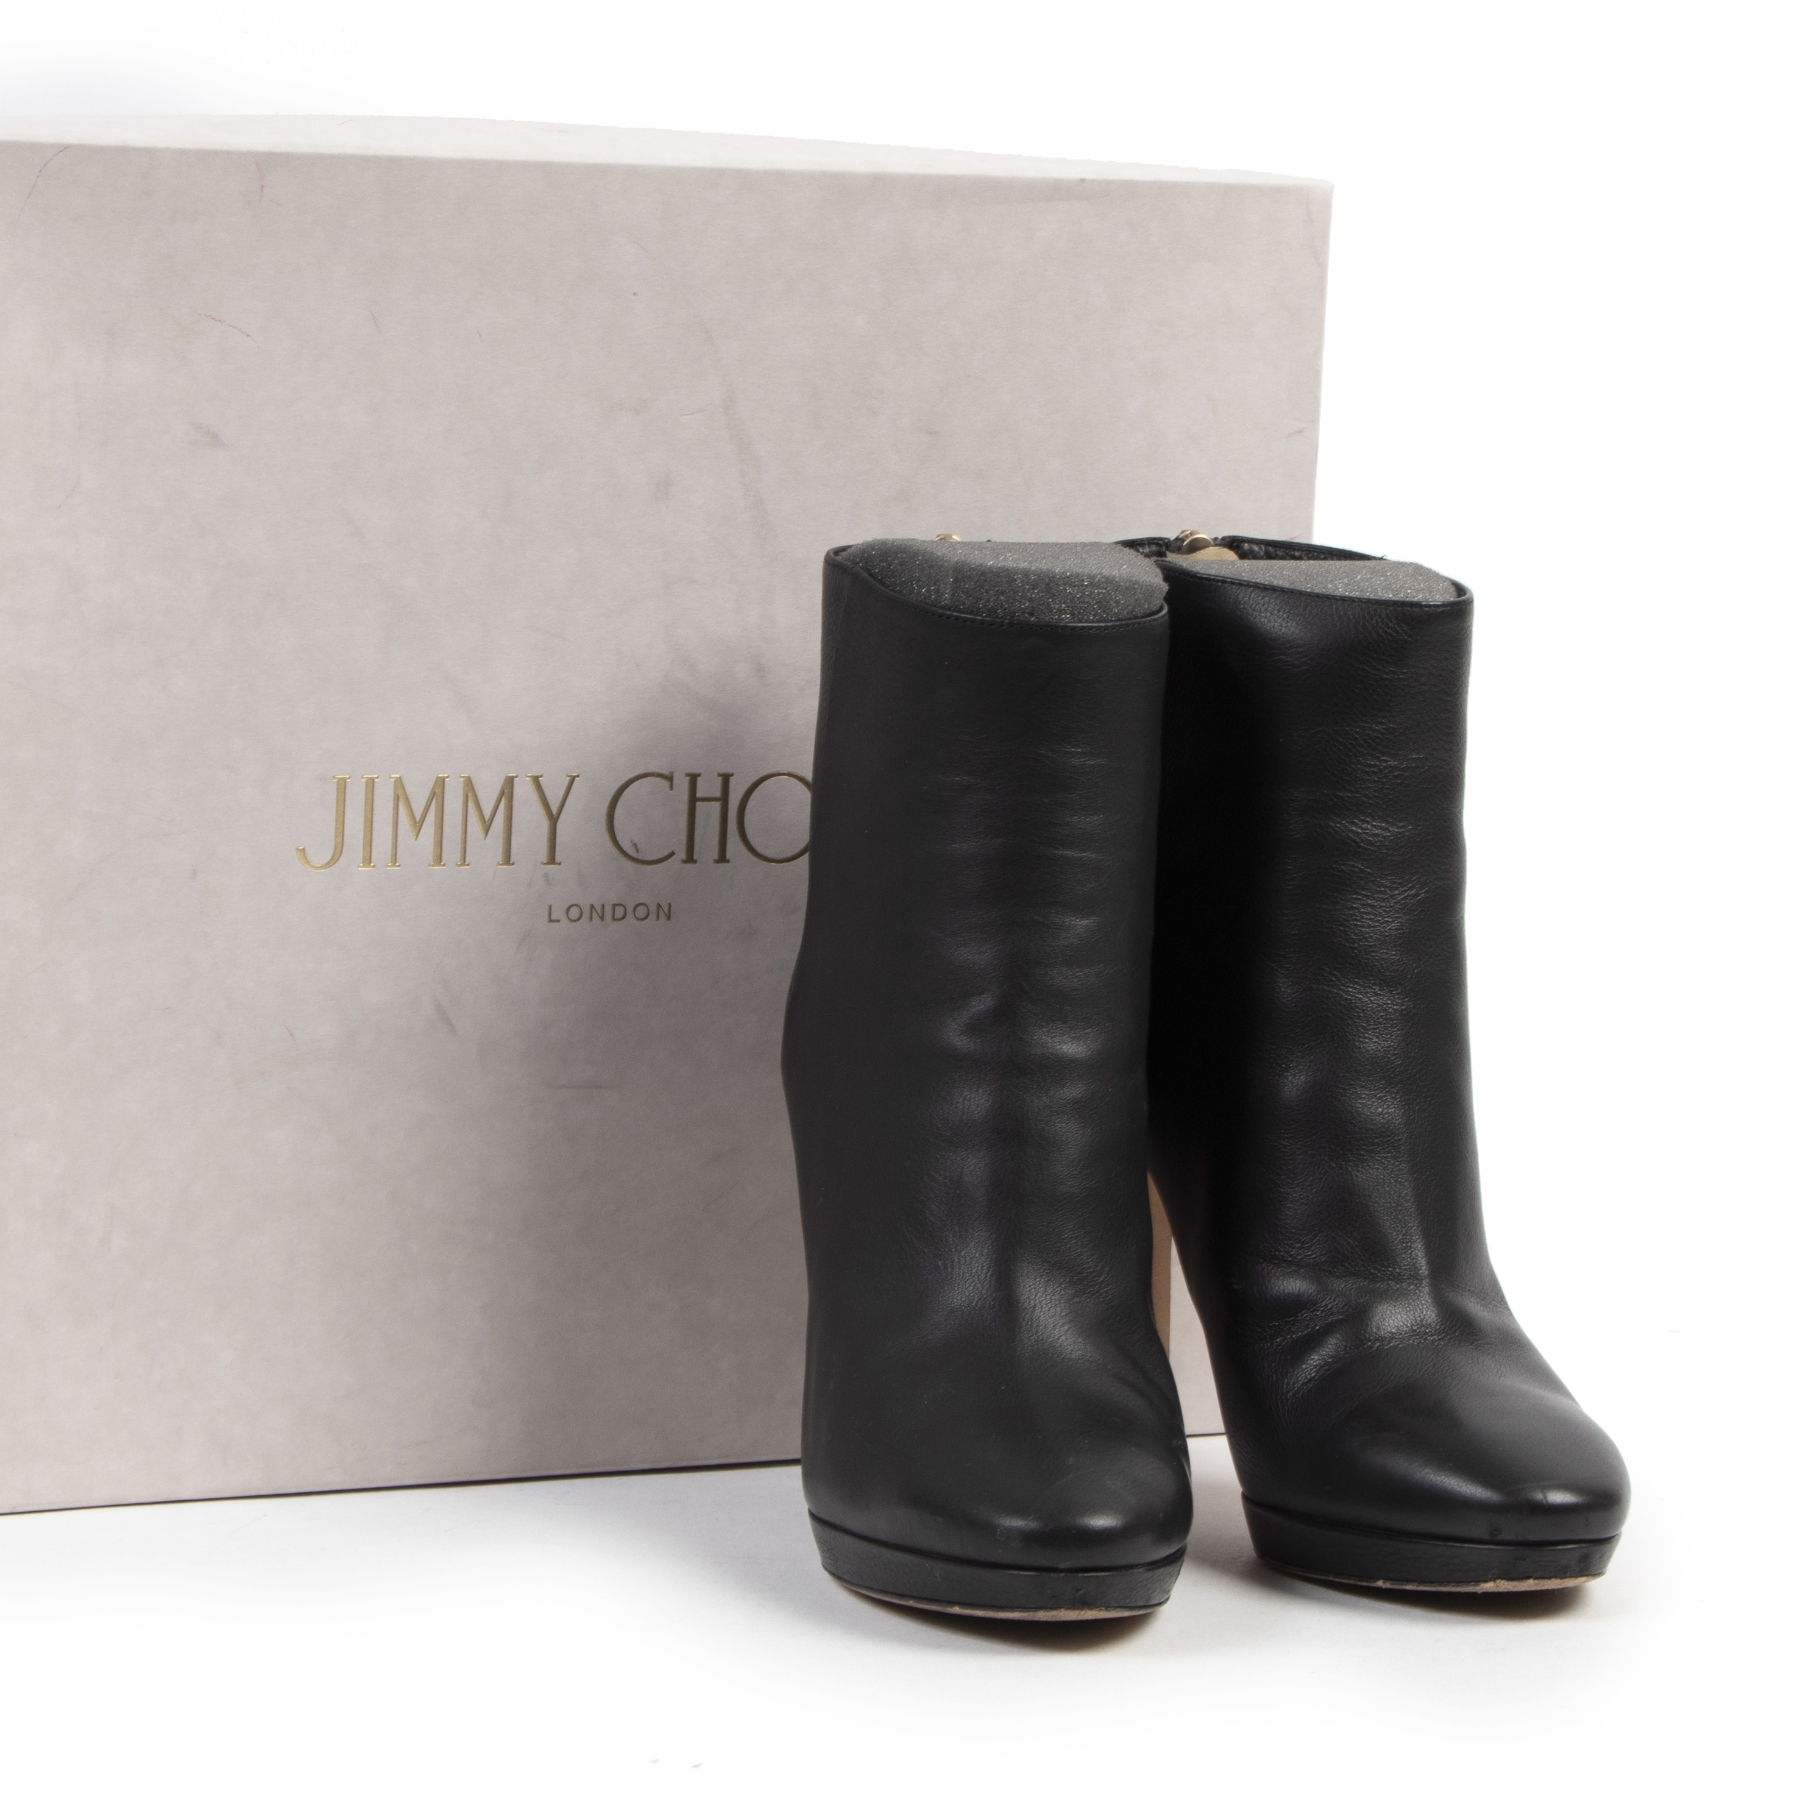 Authentic secondhand Jimmy Choo Harvey 100 Black Leather Ankle Boots - Size 36,5  designer shoes fashion luxury vintage webshop